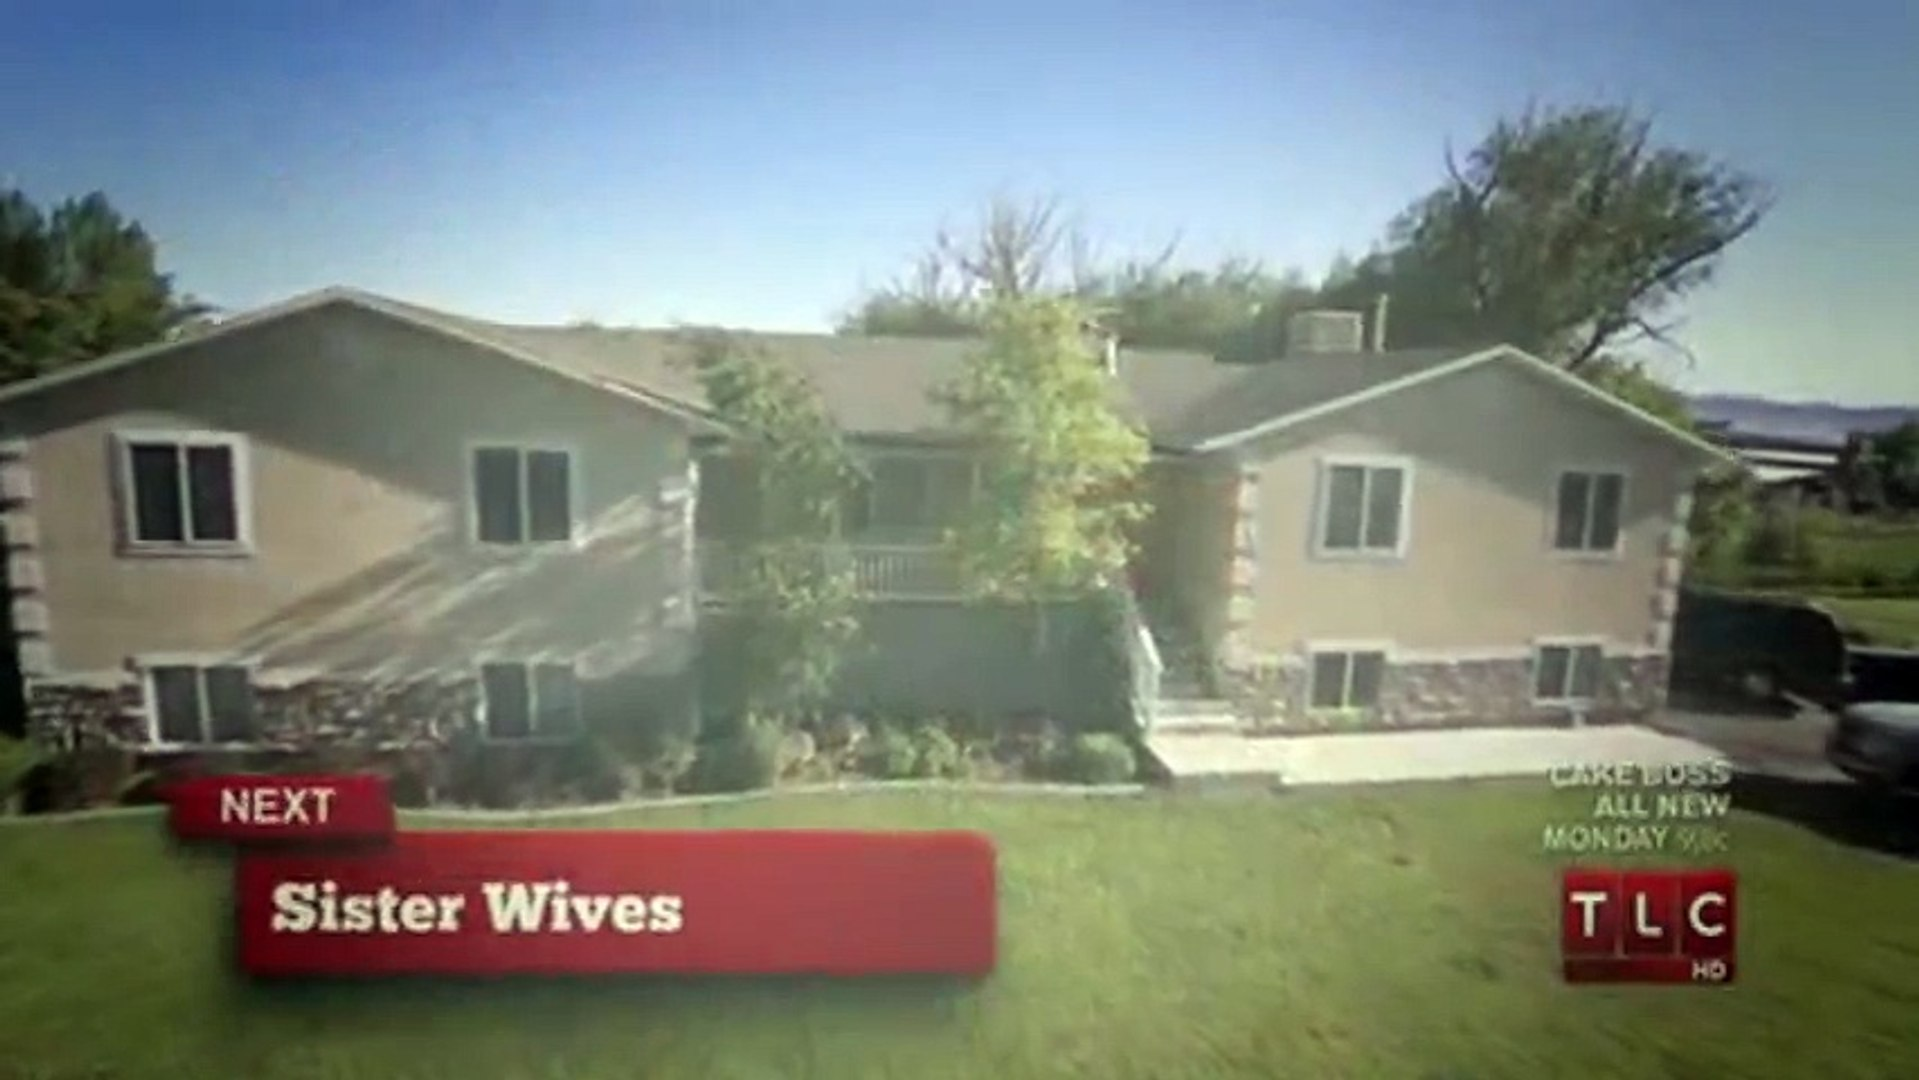 Sister Wives S01 - Ep07 HD Watch